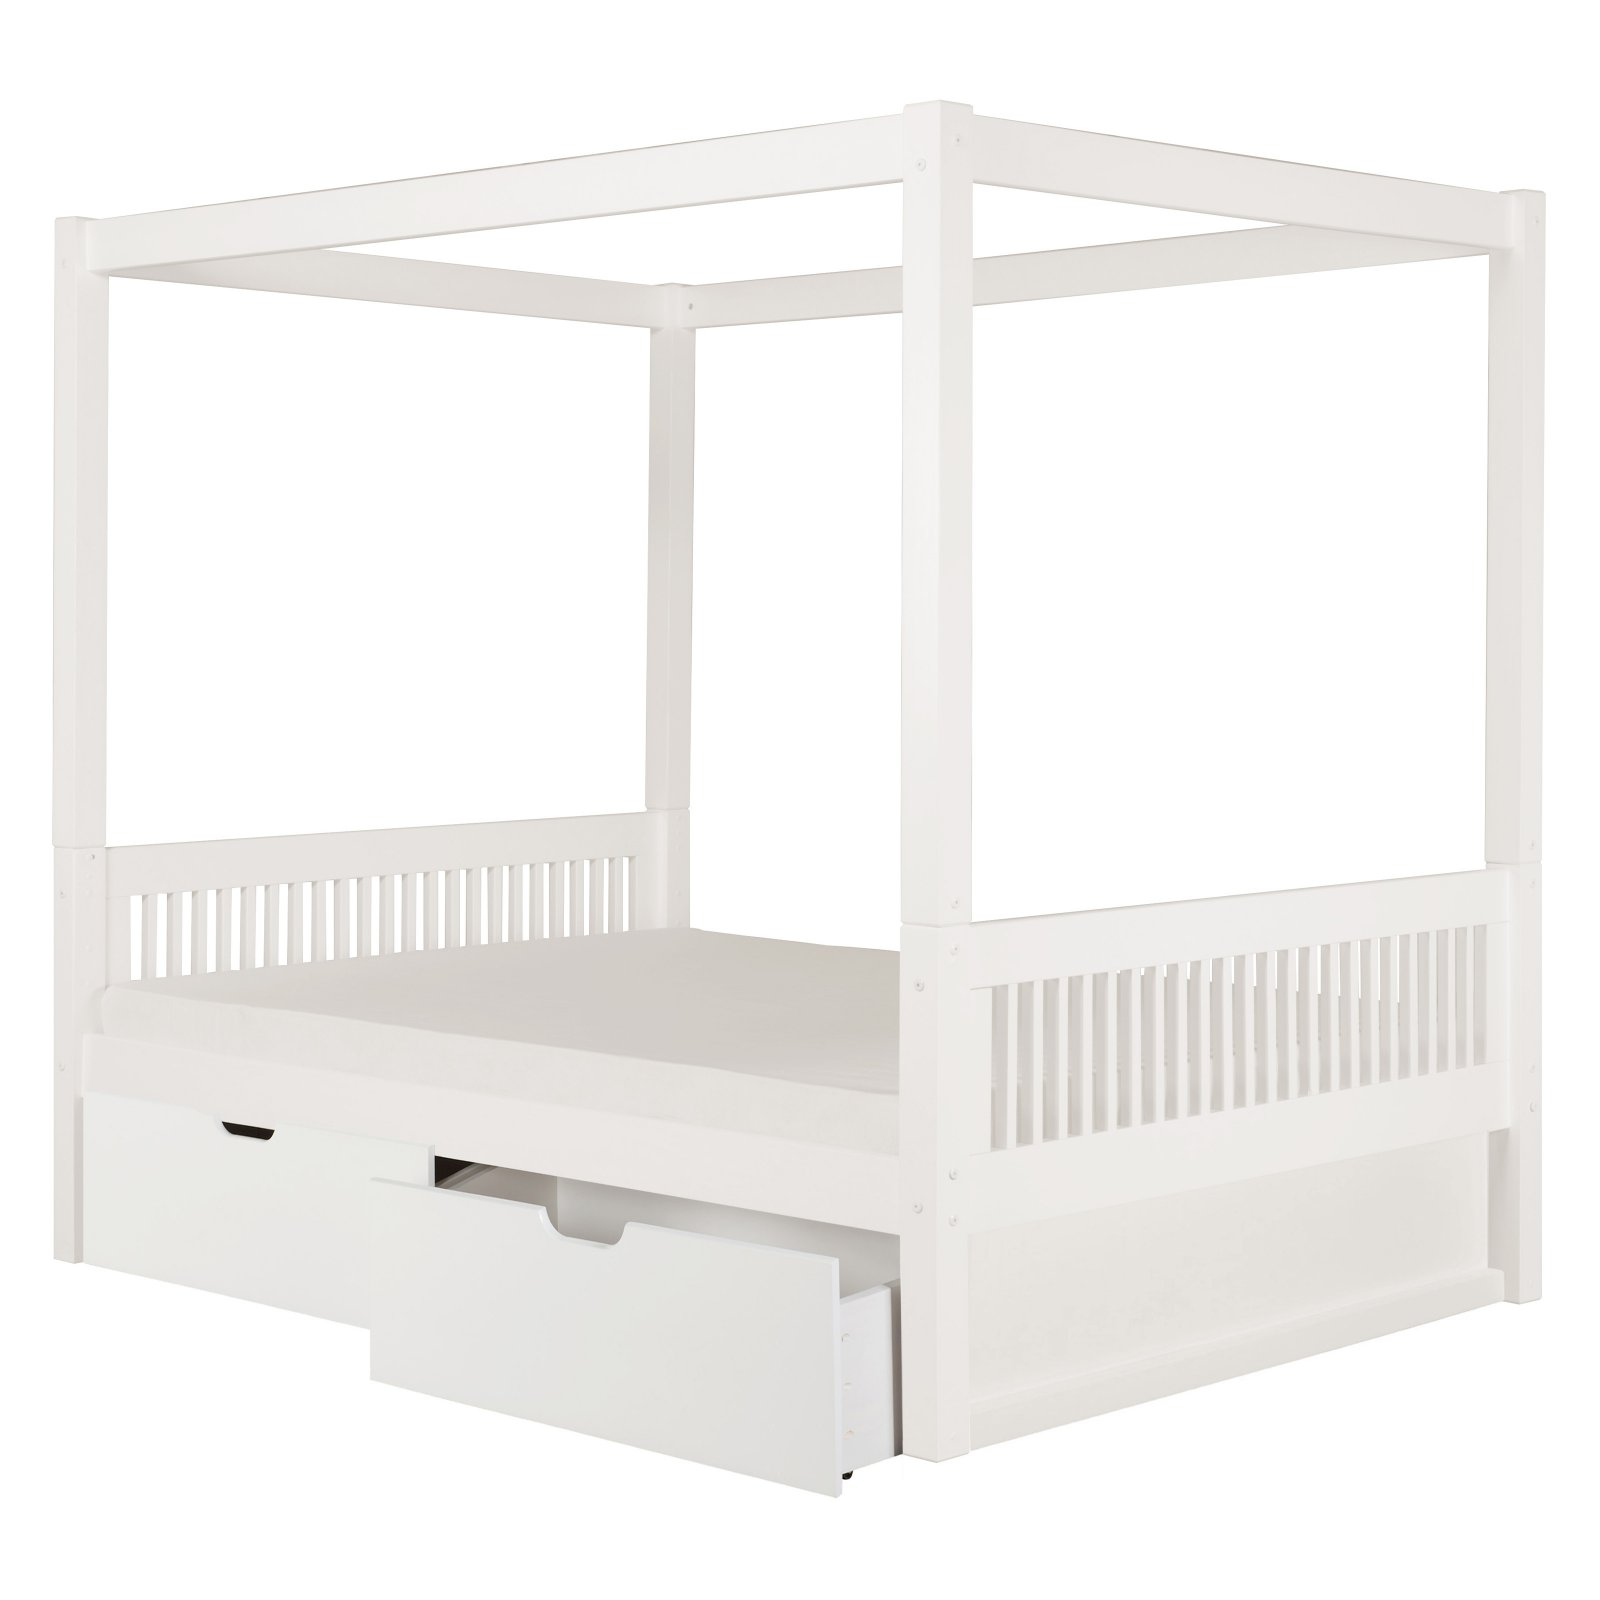 Camaflexi Full Canopy Bed with Mission Headboard by Eco-Flex